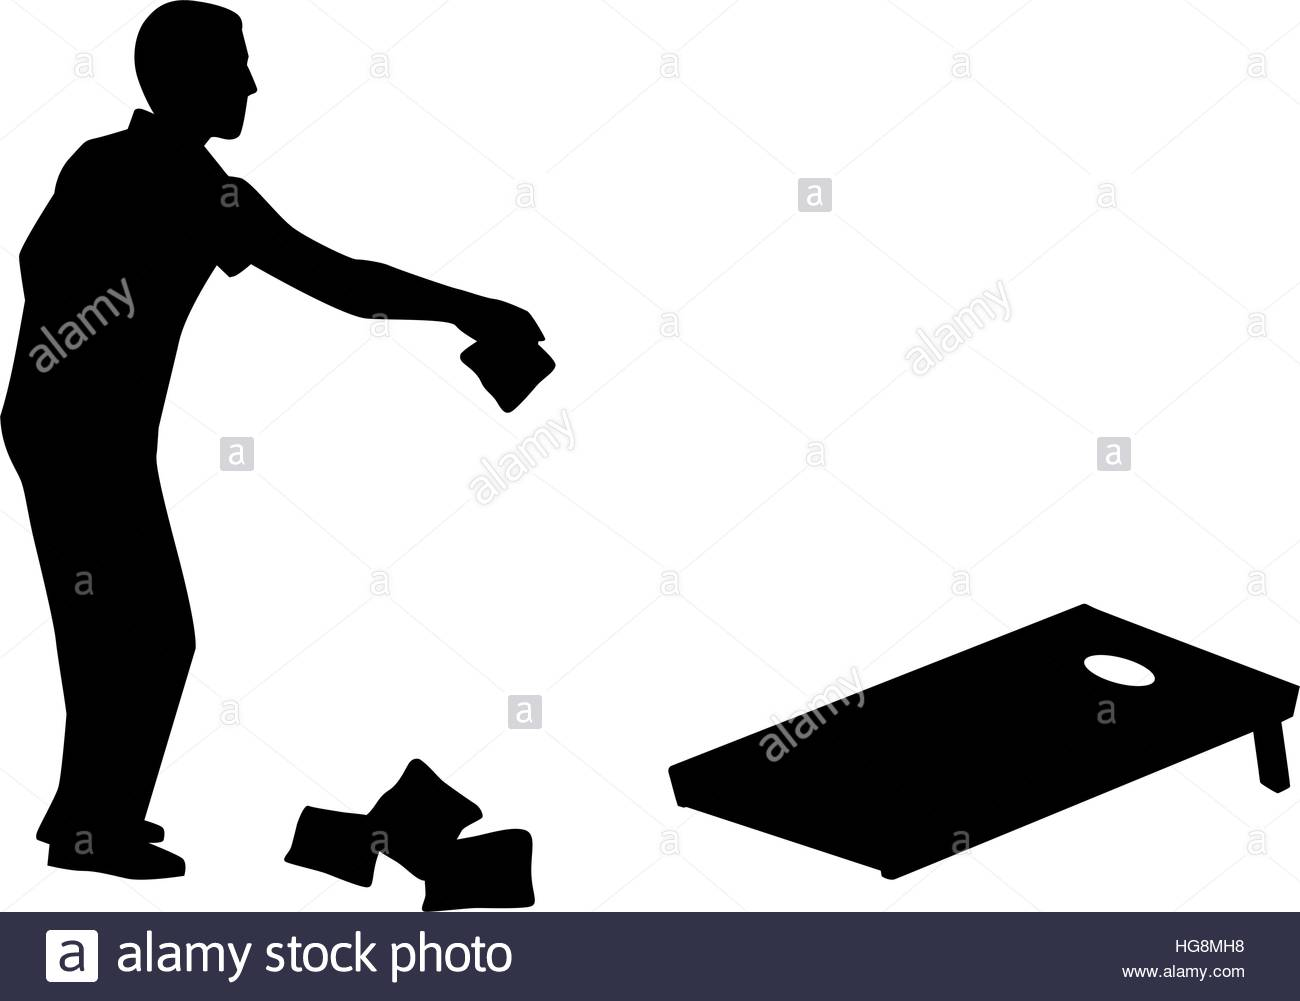 1300x1001 Man Playing Cornhole Game Silhouette Stock Vector Art